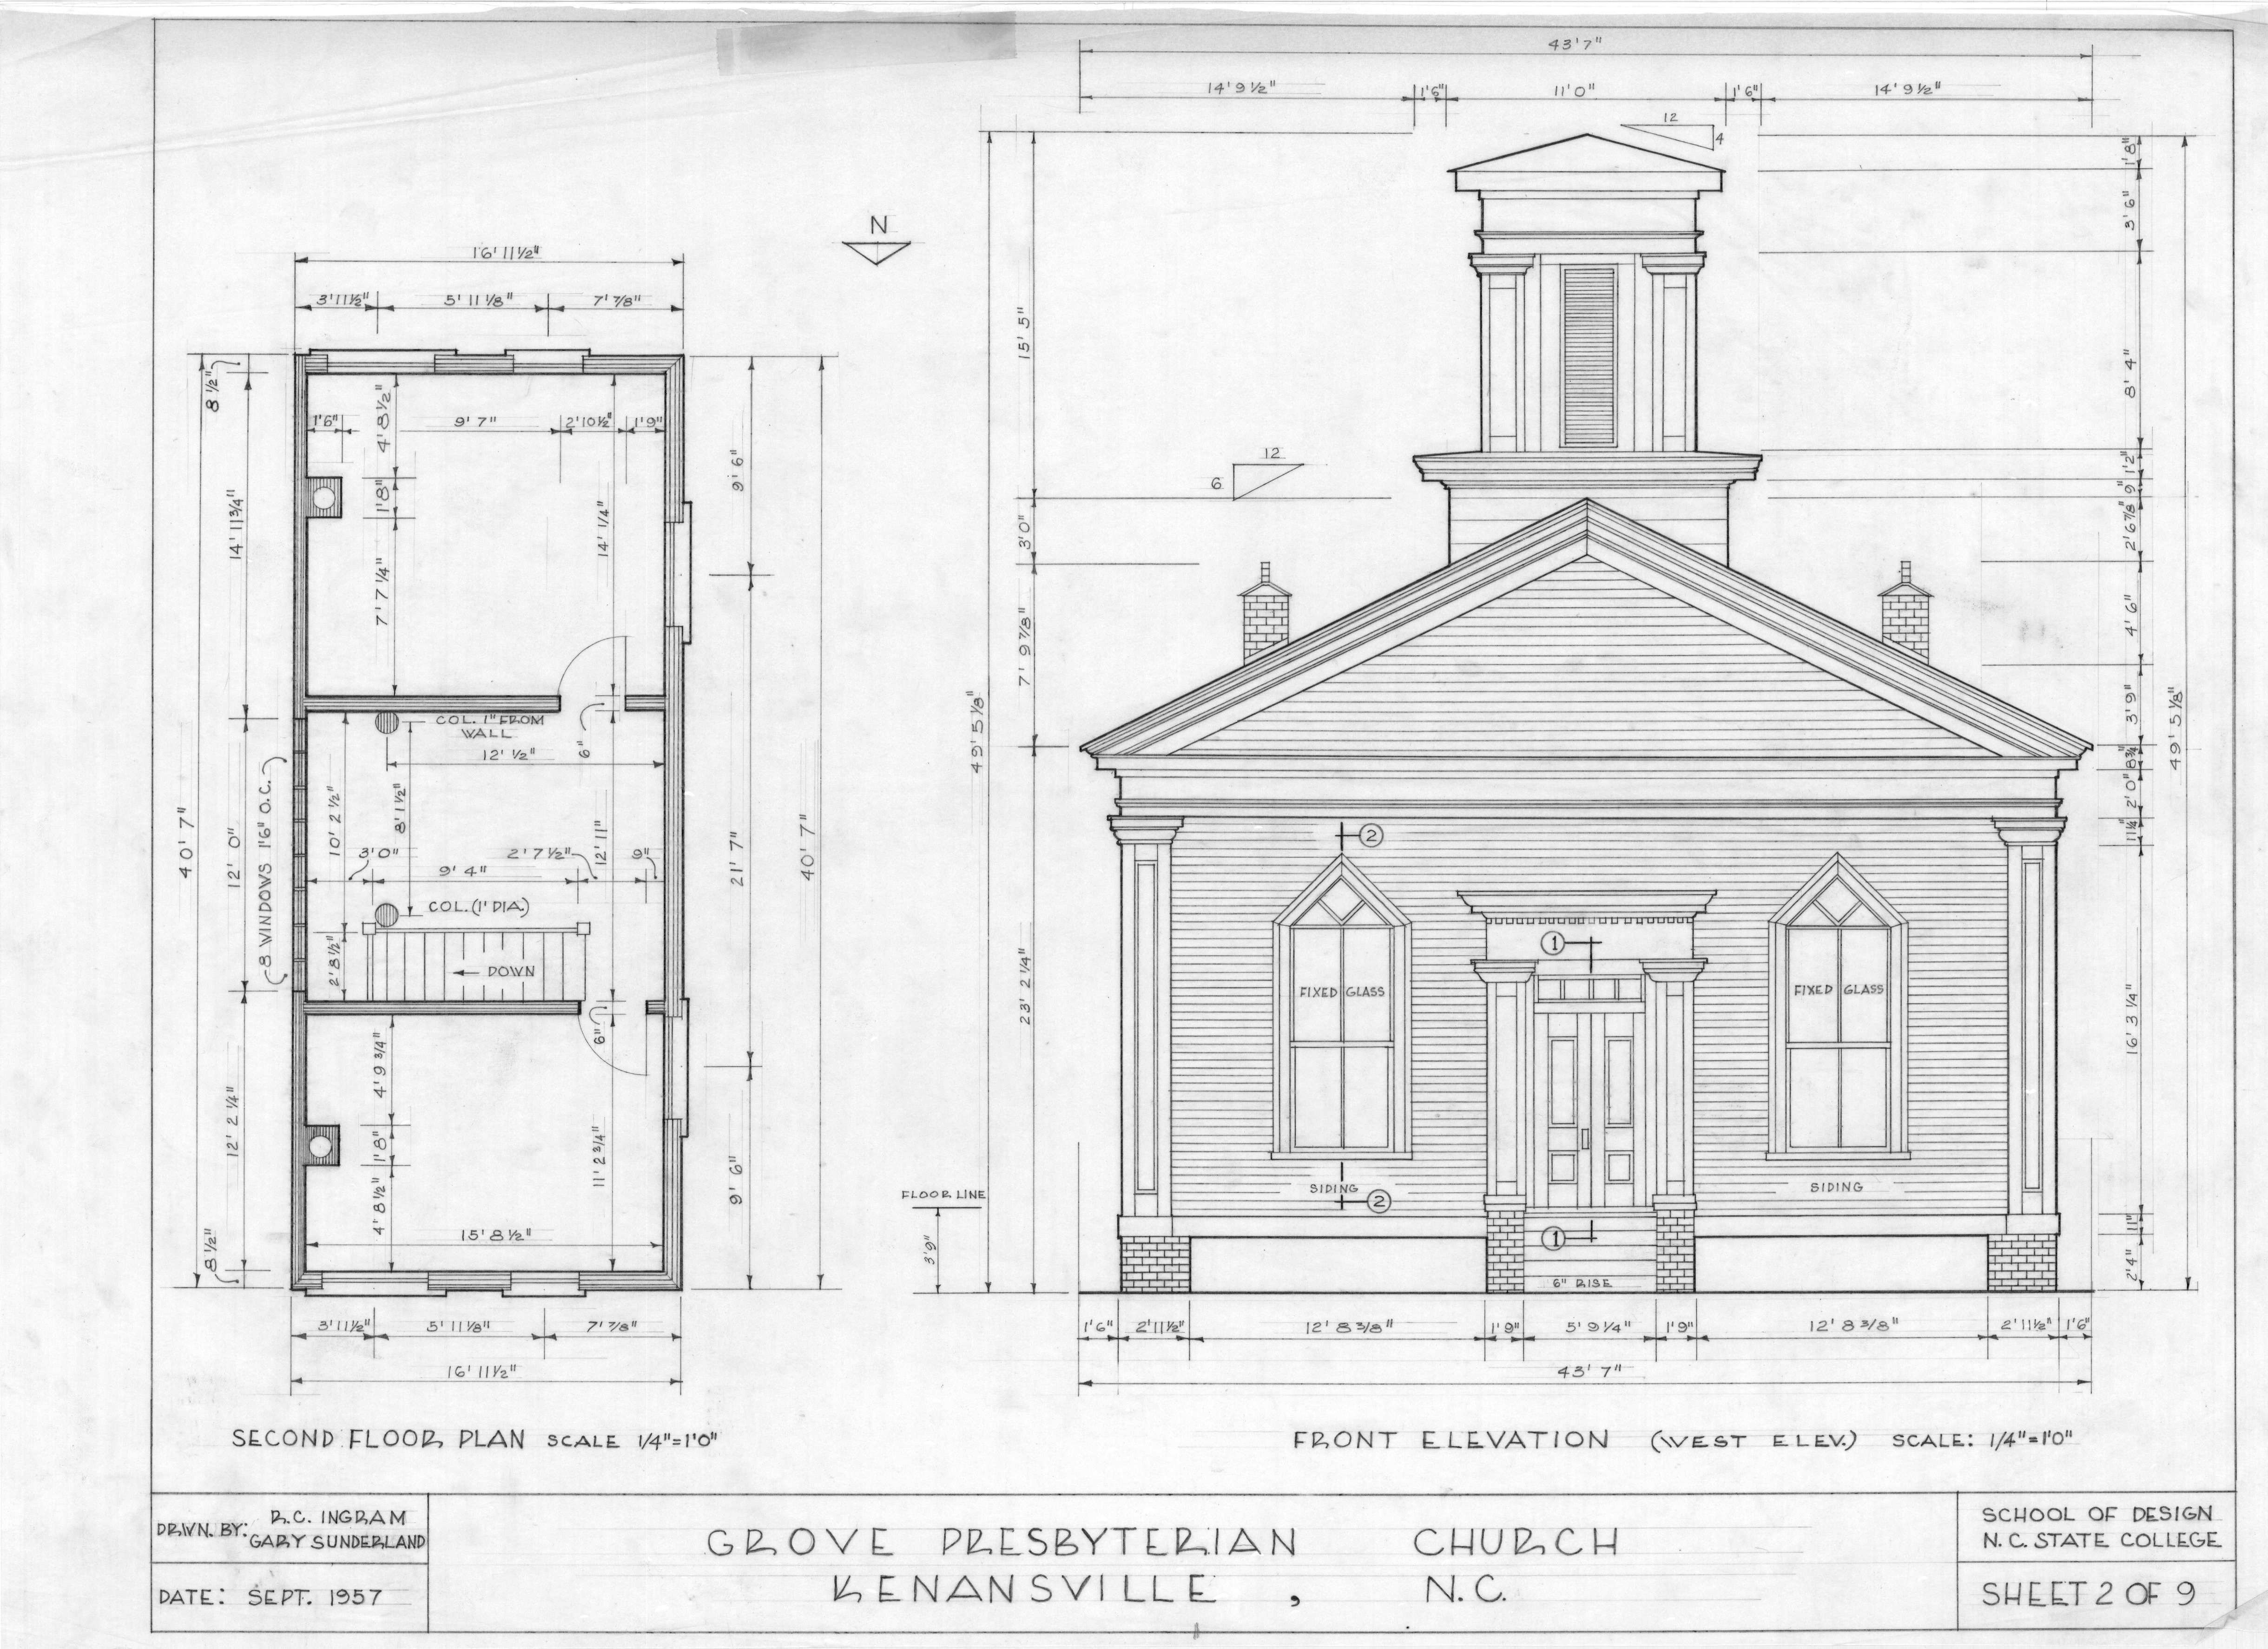 Church Elevation Plan : Second floor plan and west elevation grove presbyterian